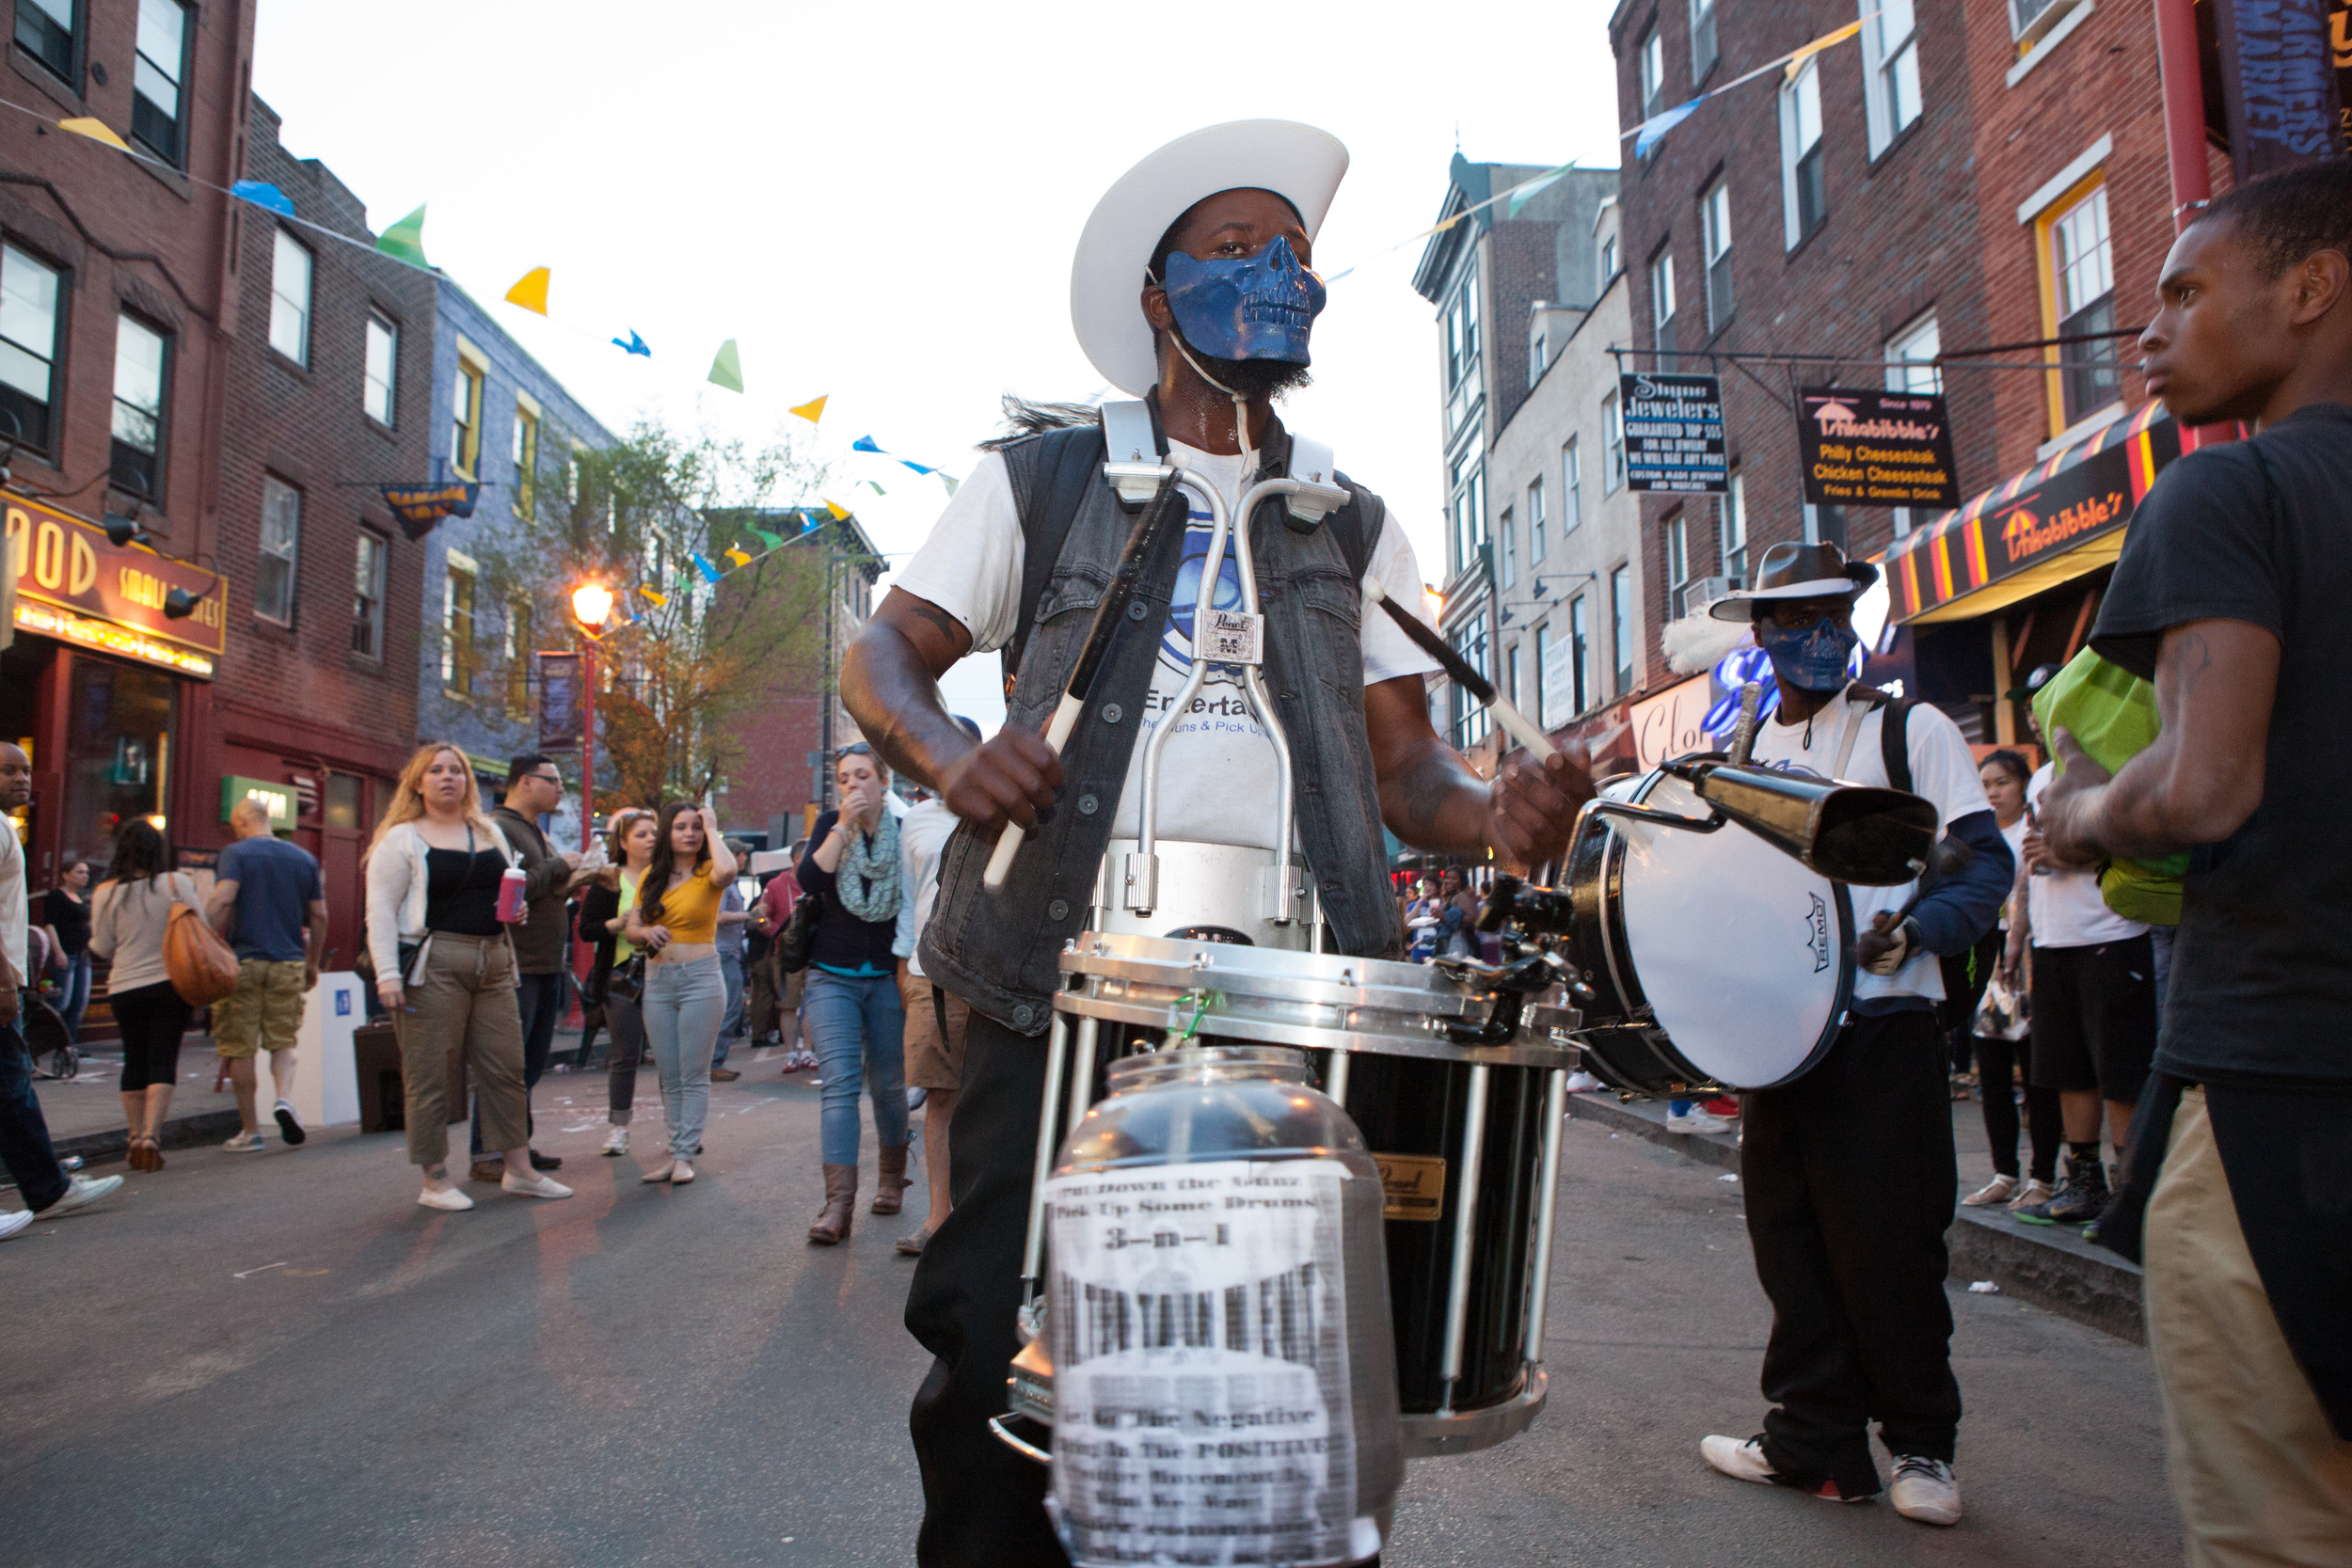 South Street Spring Festival, Philadelphia festival, Spring Festival Philadelphia, Saturday May 2 2015